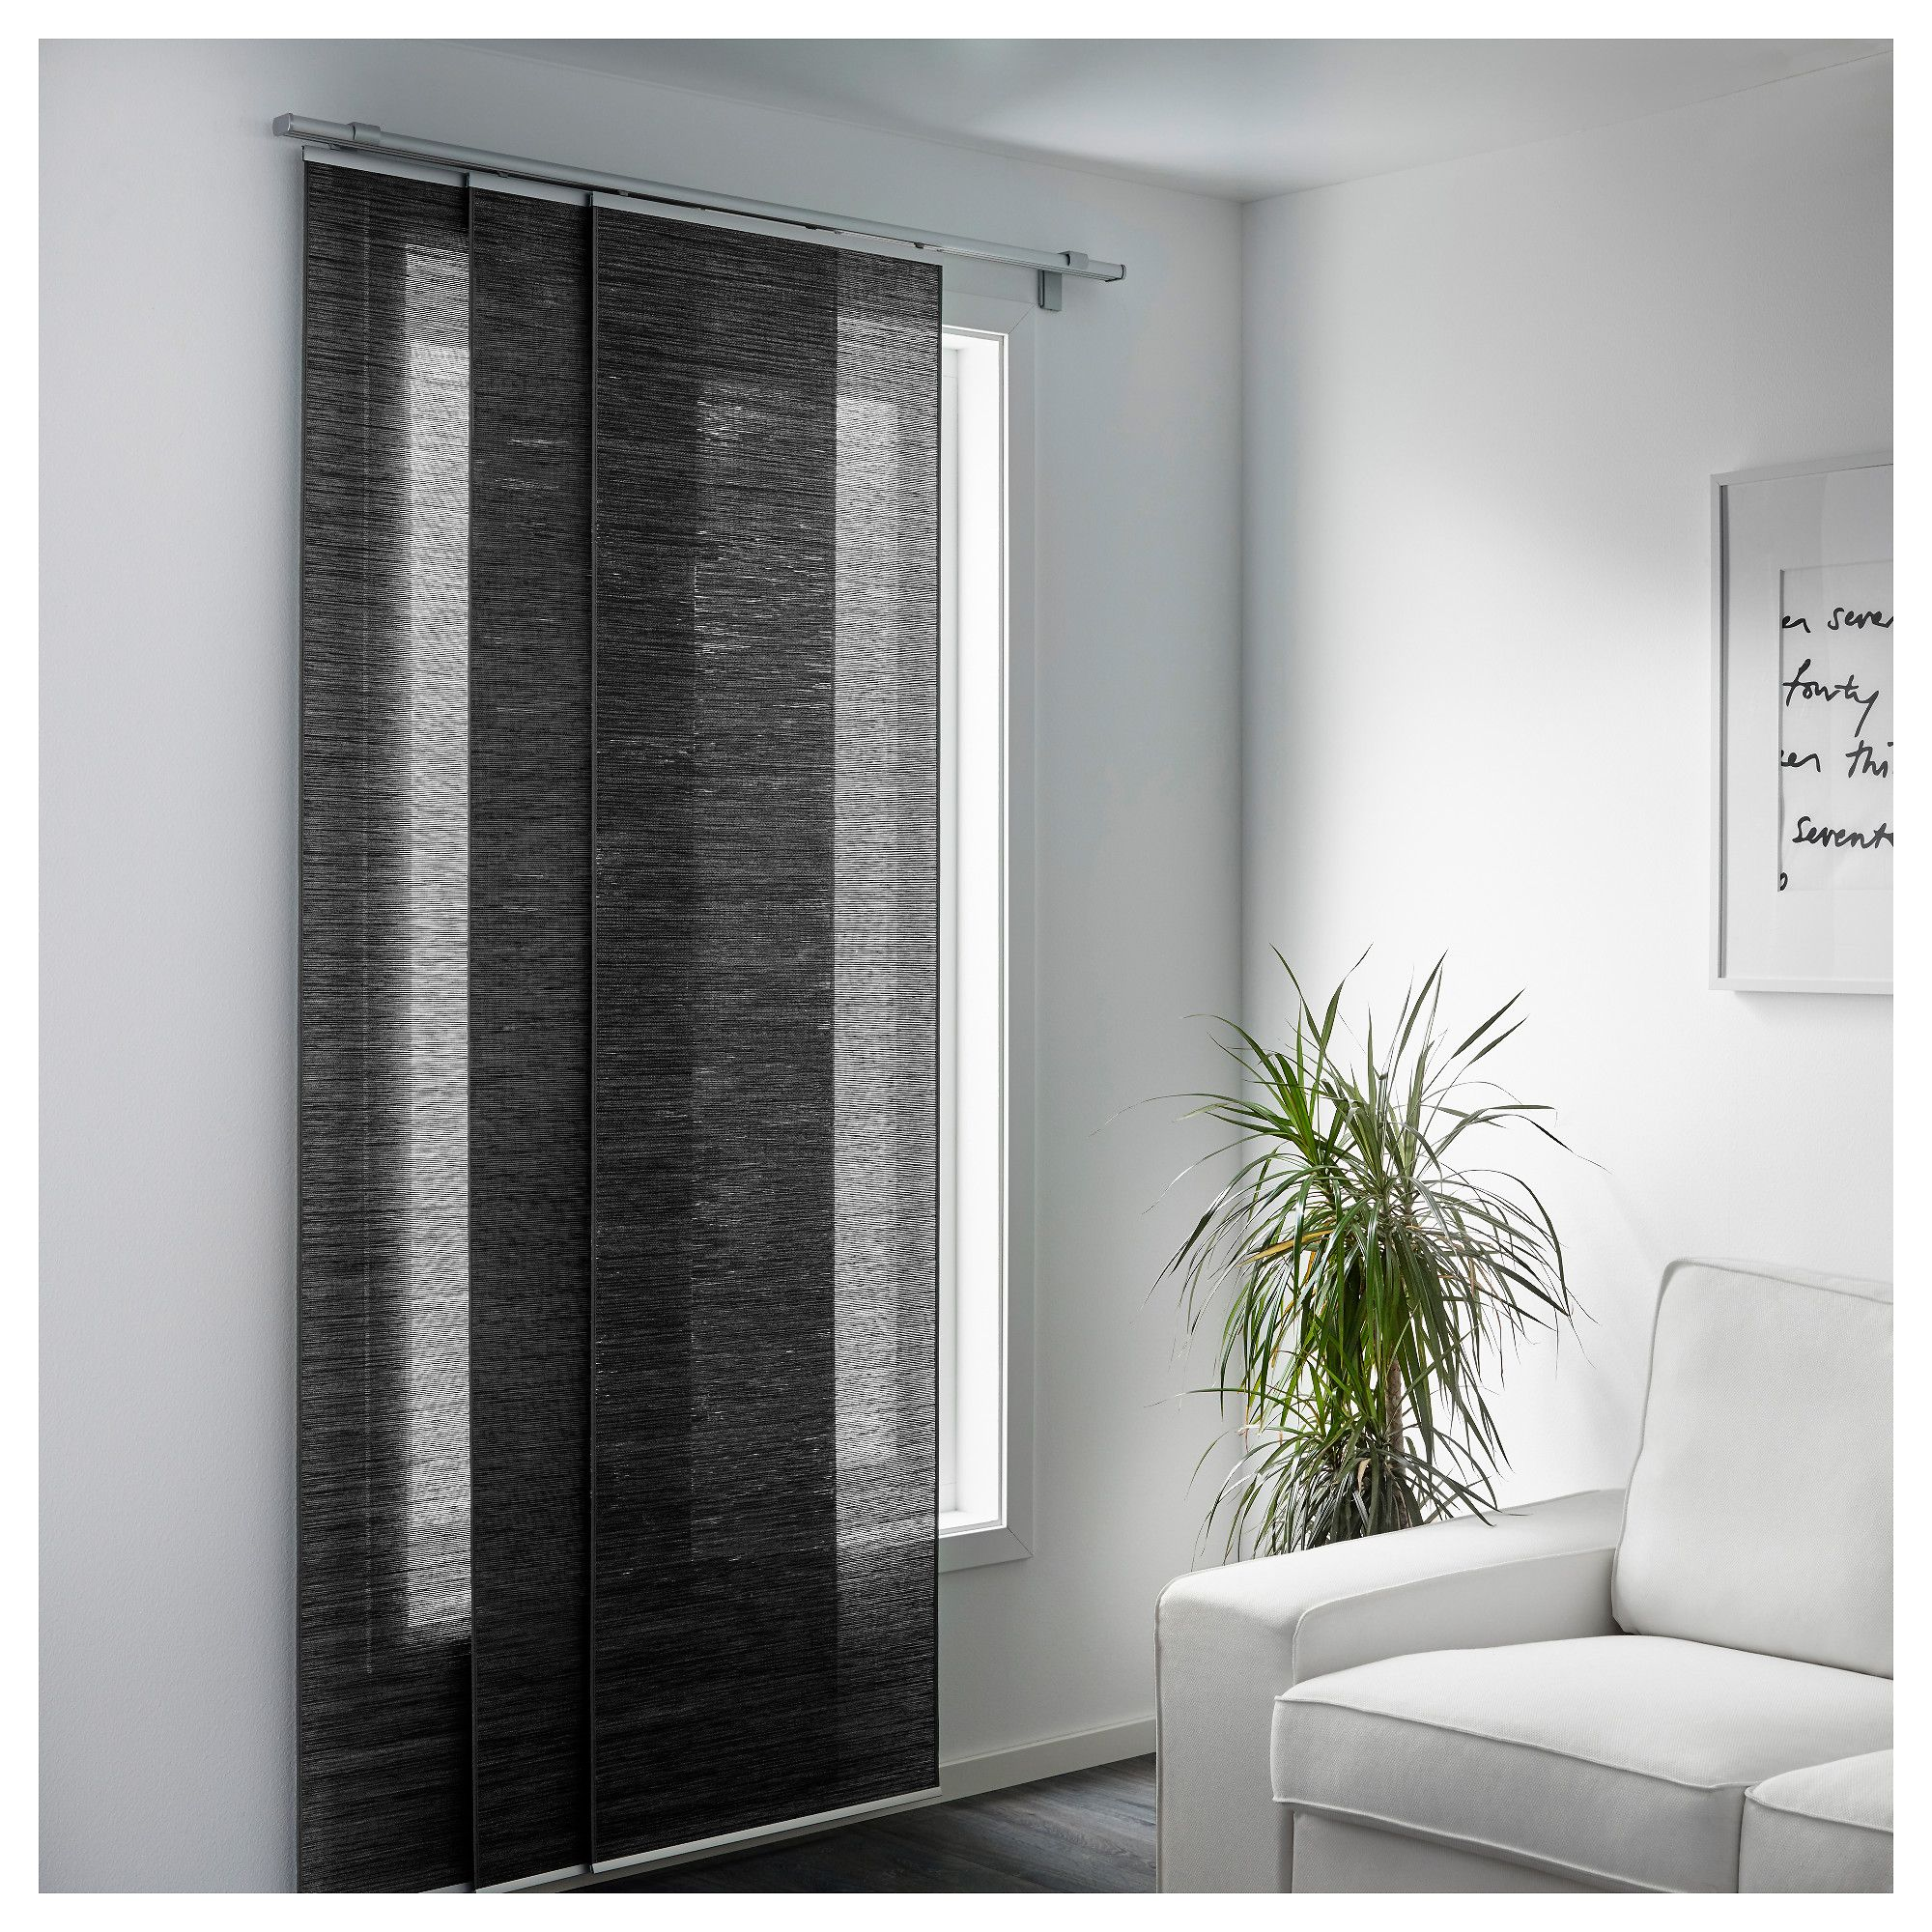 6 Stylish Solutions To Replace Those Dreaded Vertical Blinds